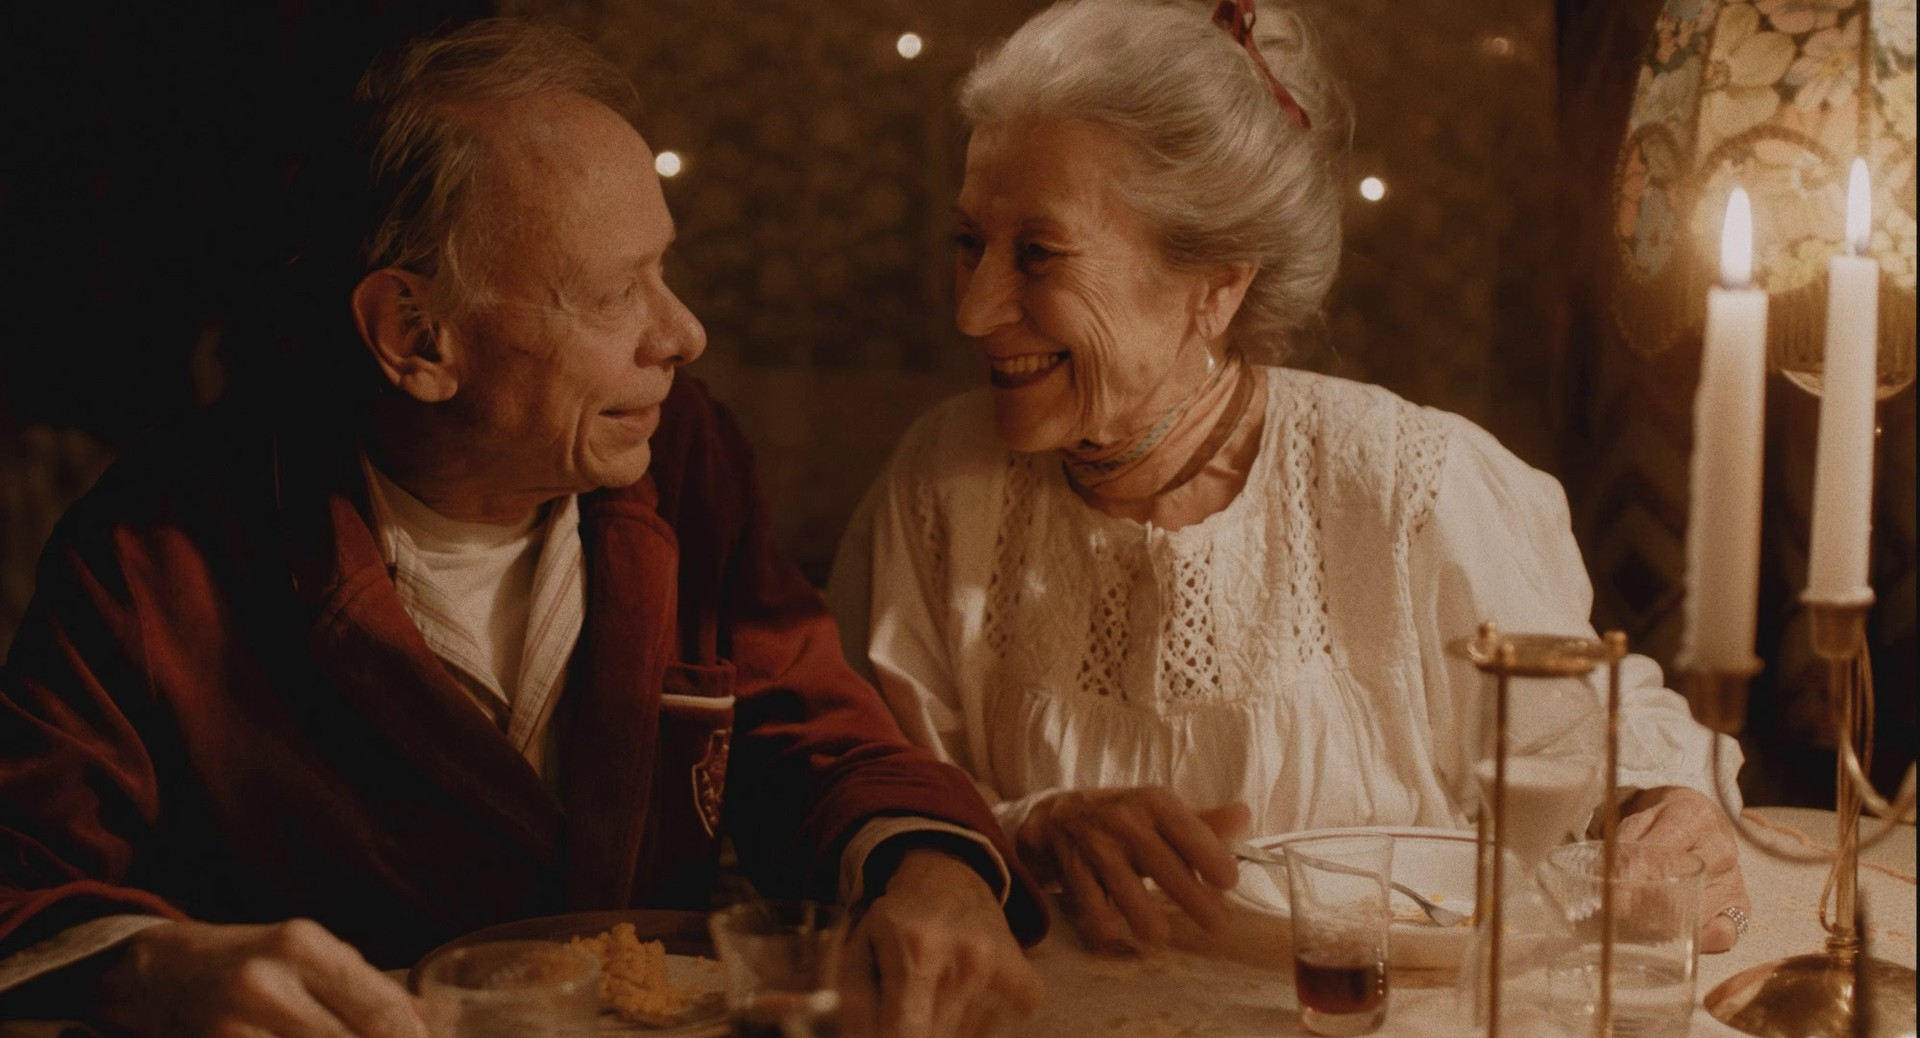 An elderly man reconciles with his long lost brother, but the happiness of the family reunion soon turns into a nightmare.